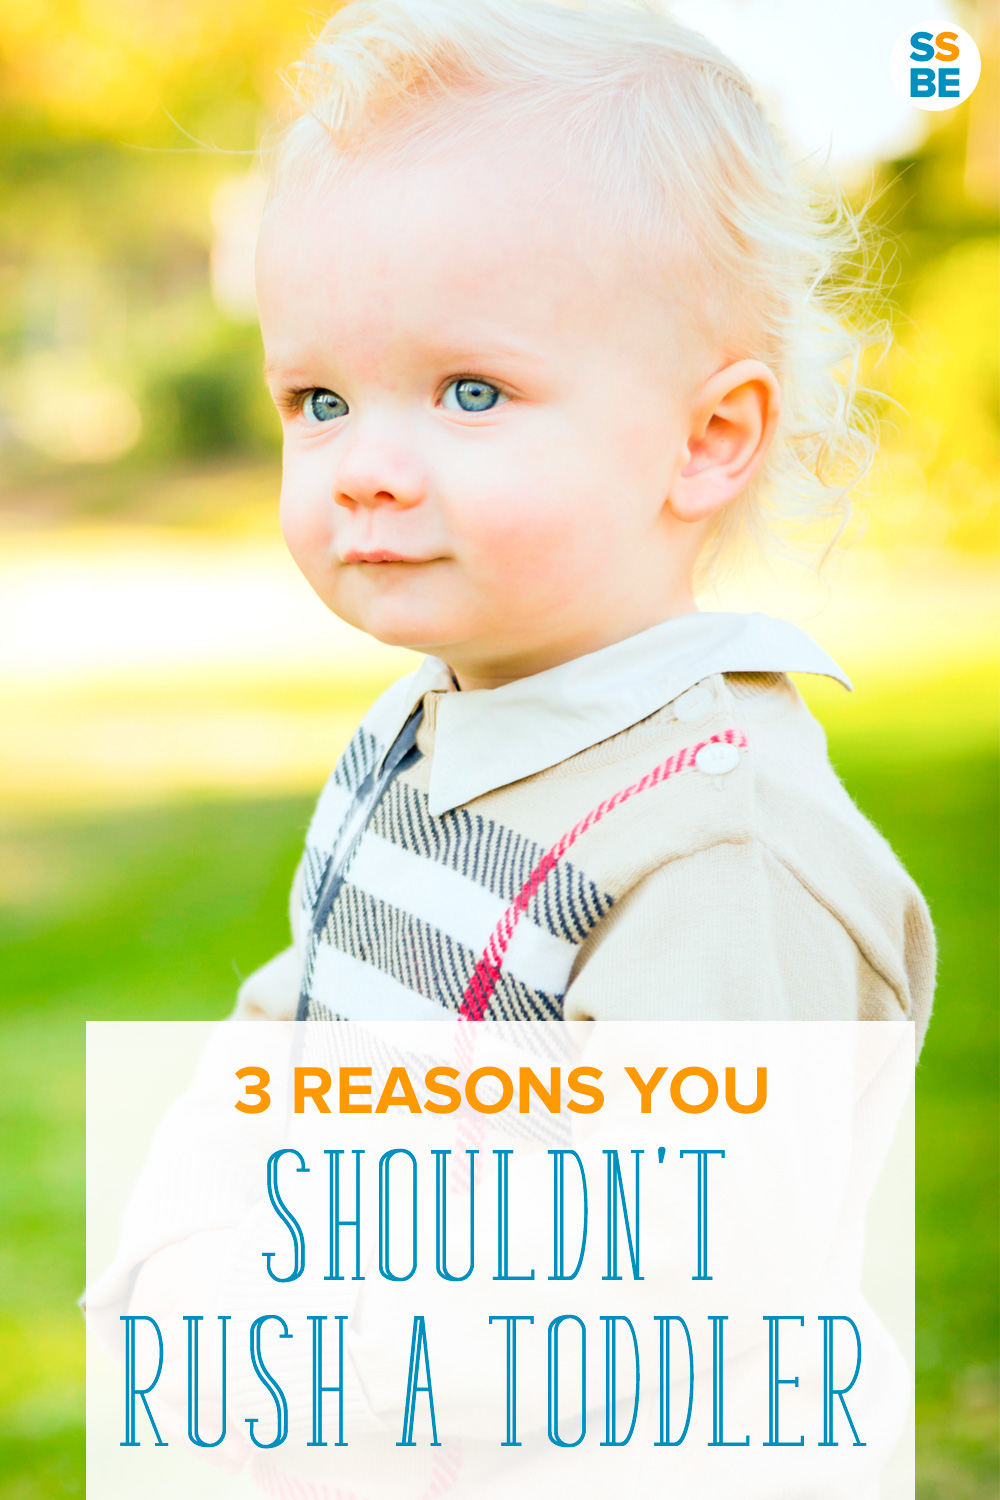 You're not alone if you've ever found yourself an impatient parent and wanting to rush a toddler along. But here are 3 compelling reasons you shouldn't.